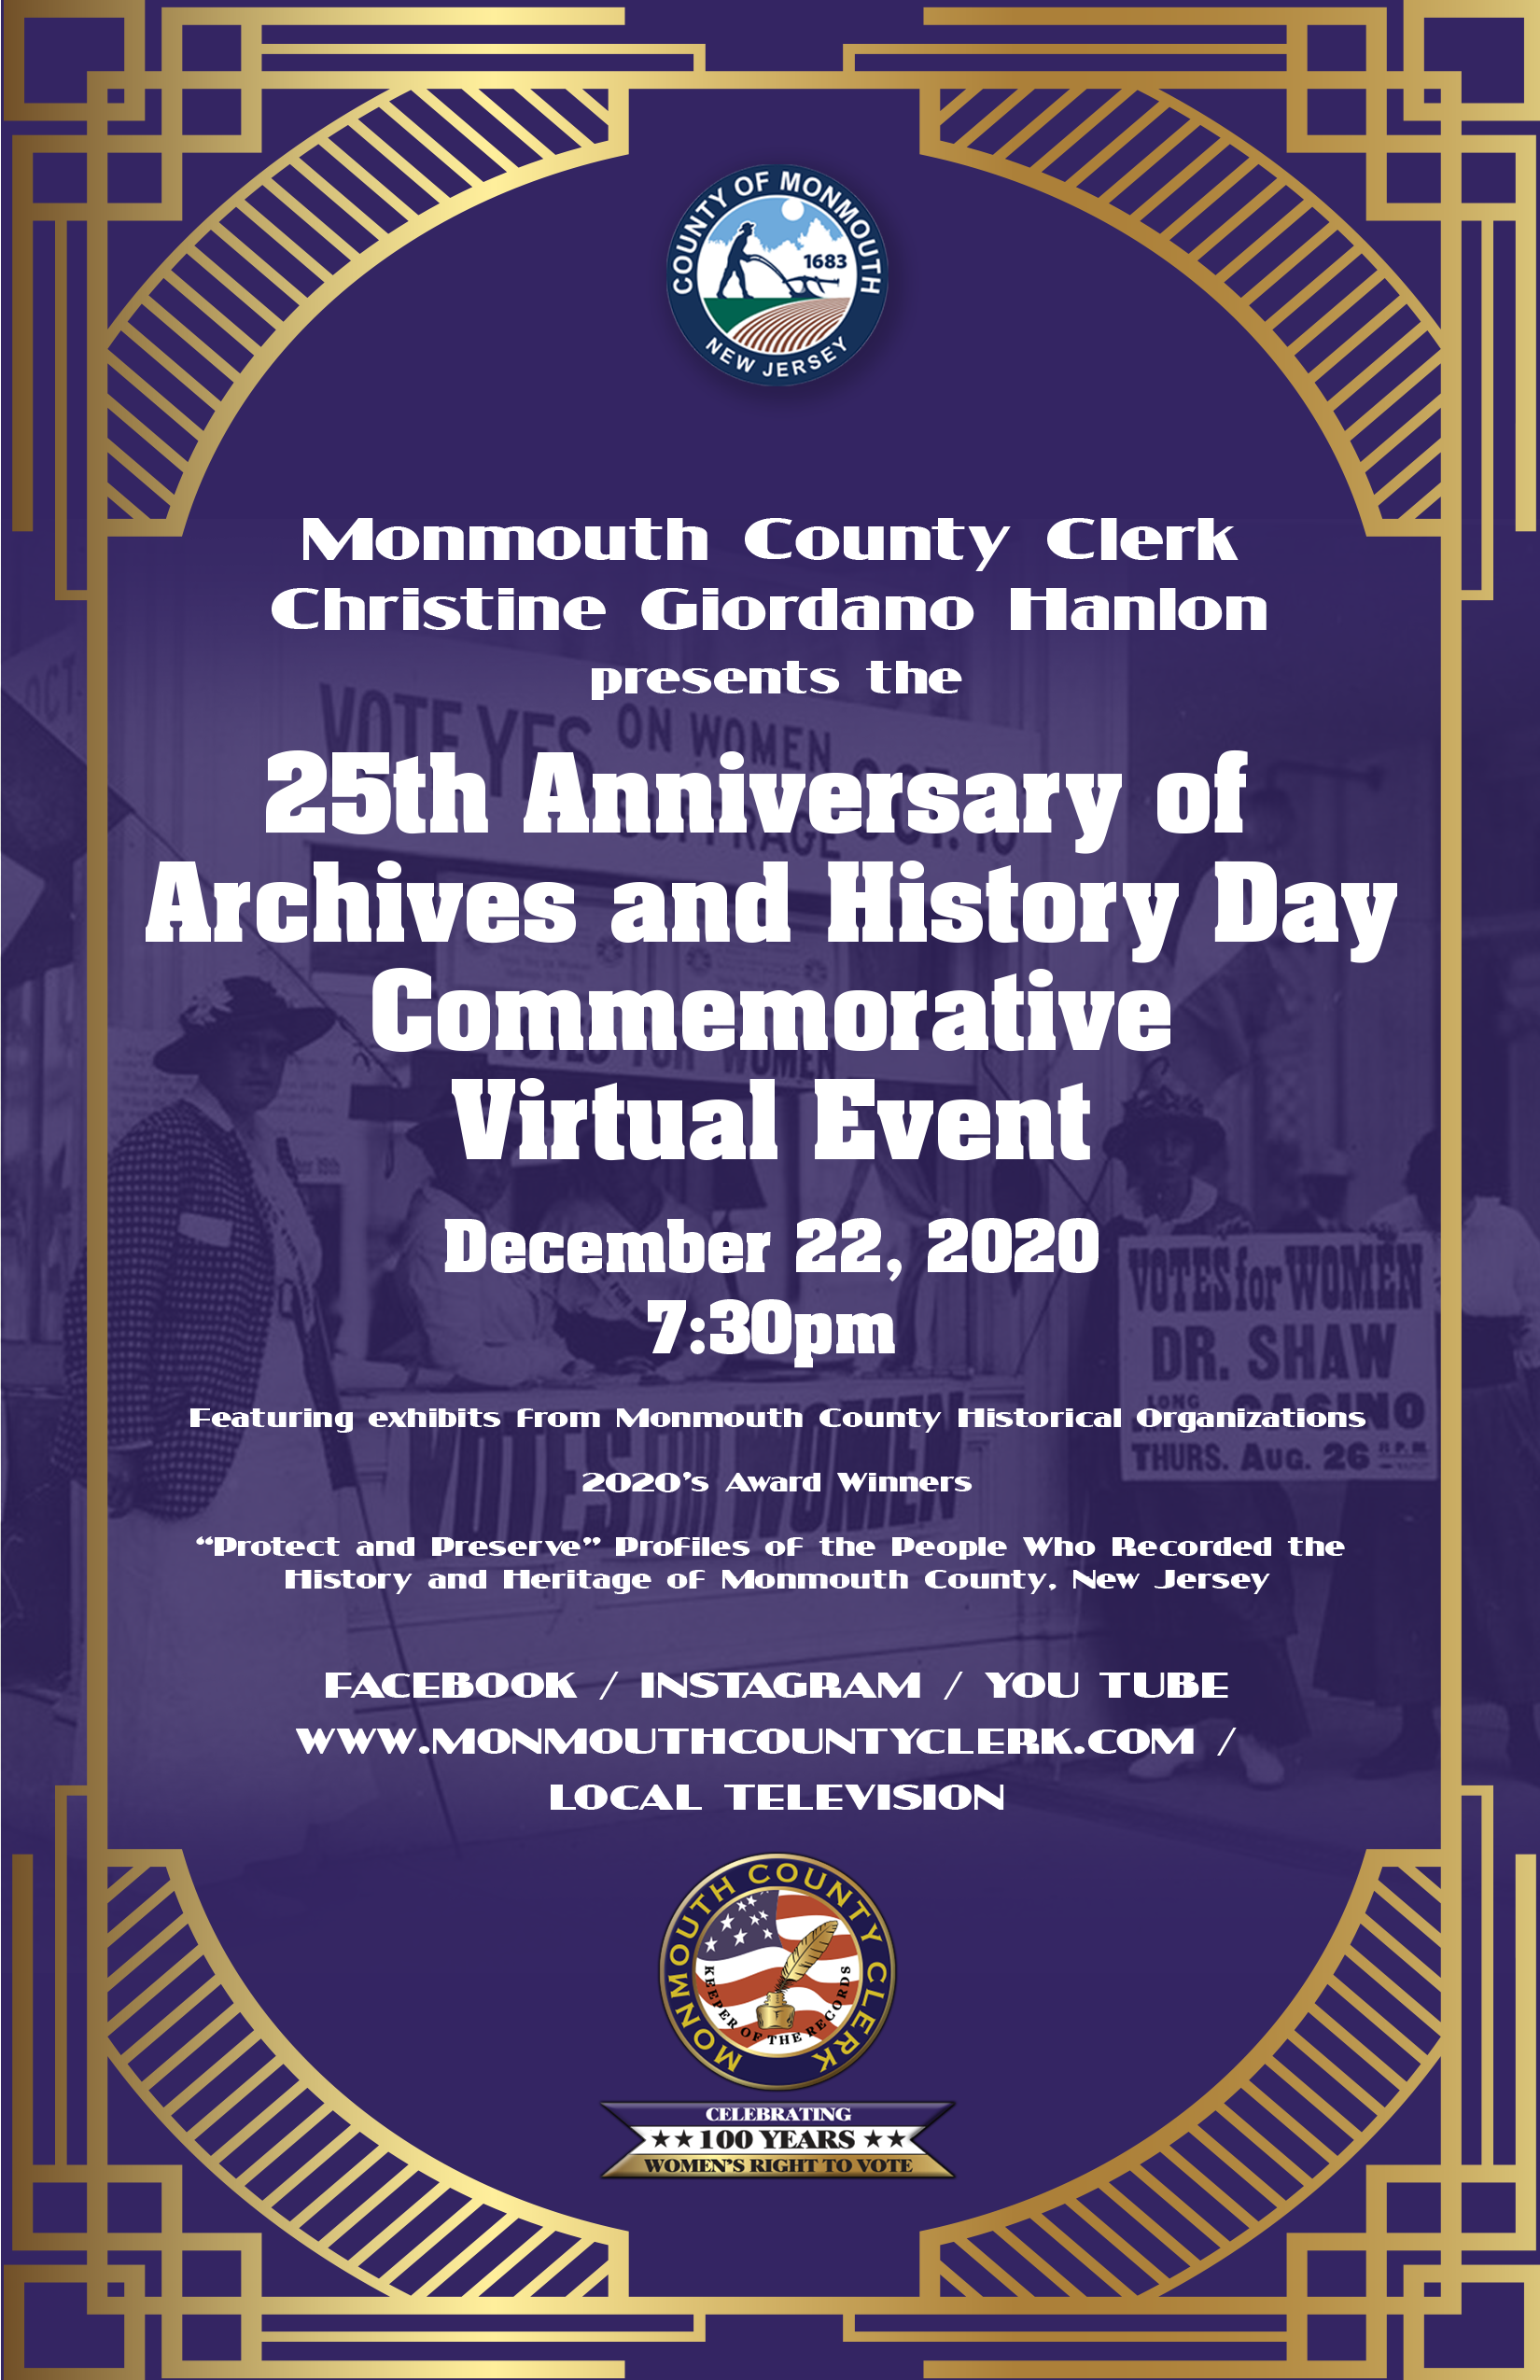 featured image for: <center>COUNTY CLERK HANLON ANNOUNCES VIRTUAL  25TH ANNIVERSARY ARCHIVES & HISTORY DAY EVENT<br><br>COMMEMORATIVE VIDEO TO BE LIVESTREAMED FOR PUBLIC VIEWING</center>